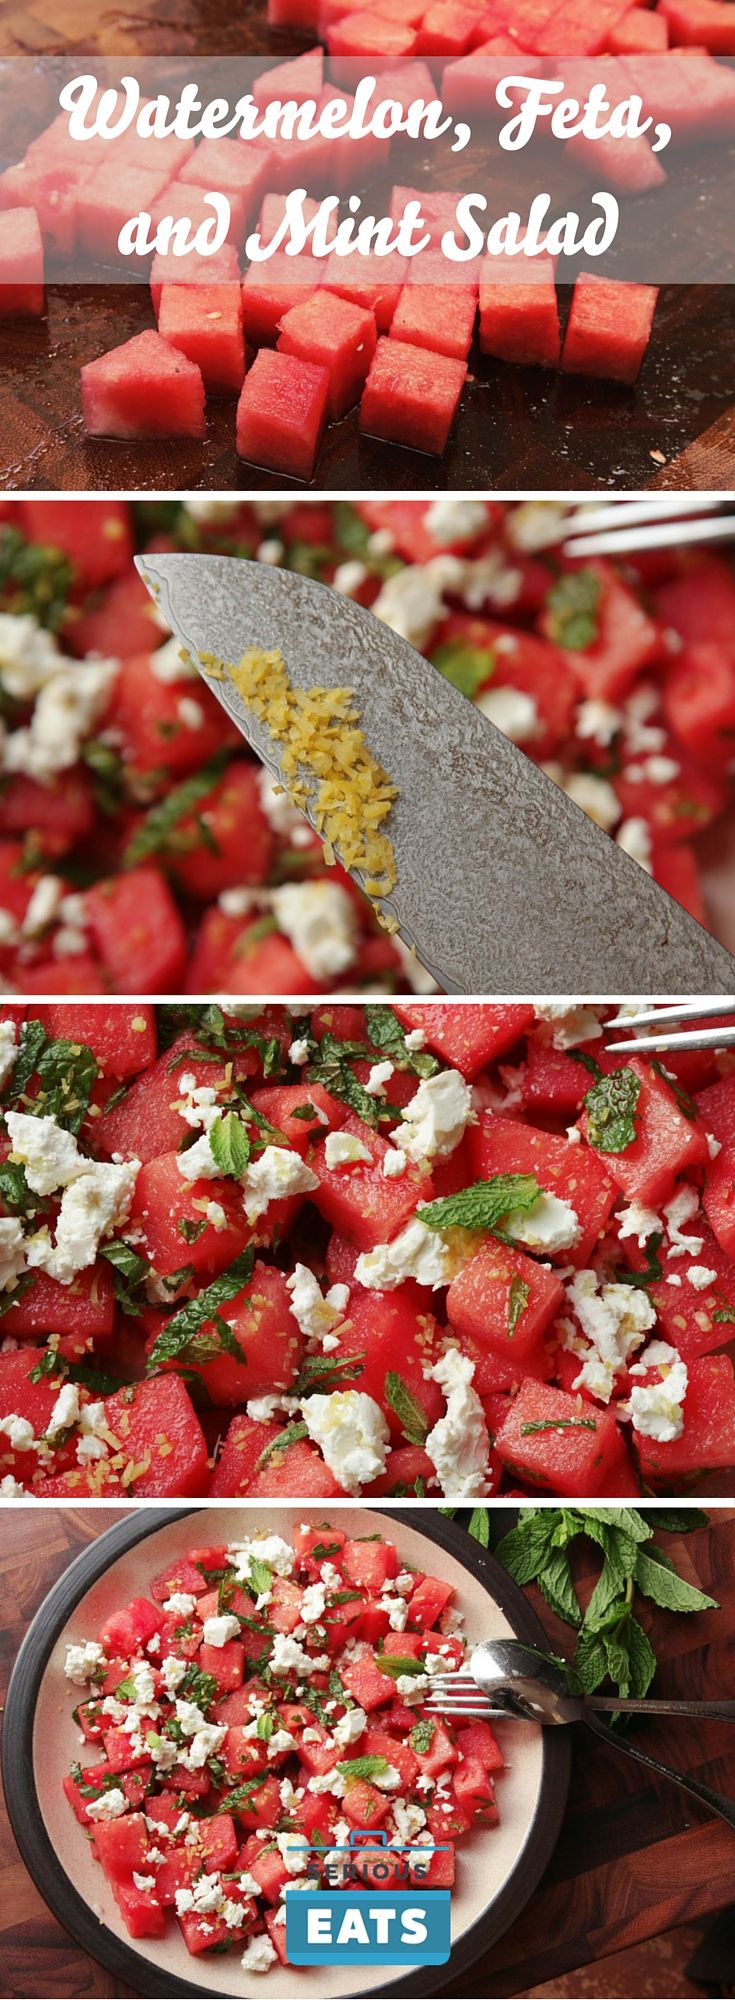 Extra-zesty watermelon, feta, and mint salad.